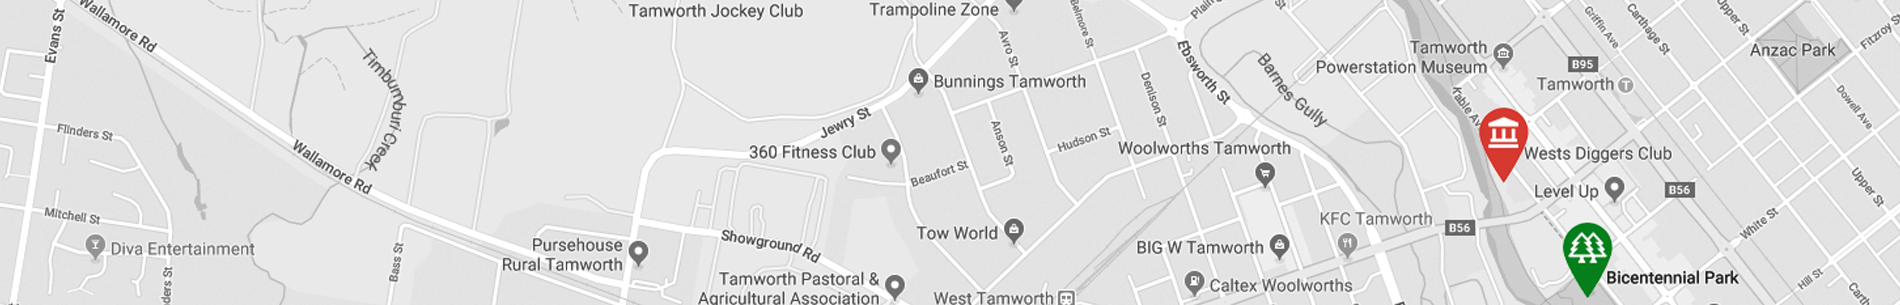 Tamworth Map